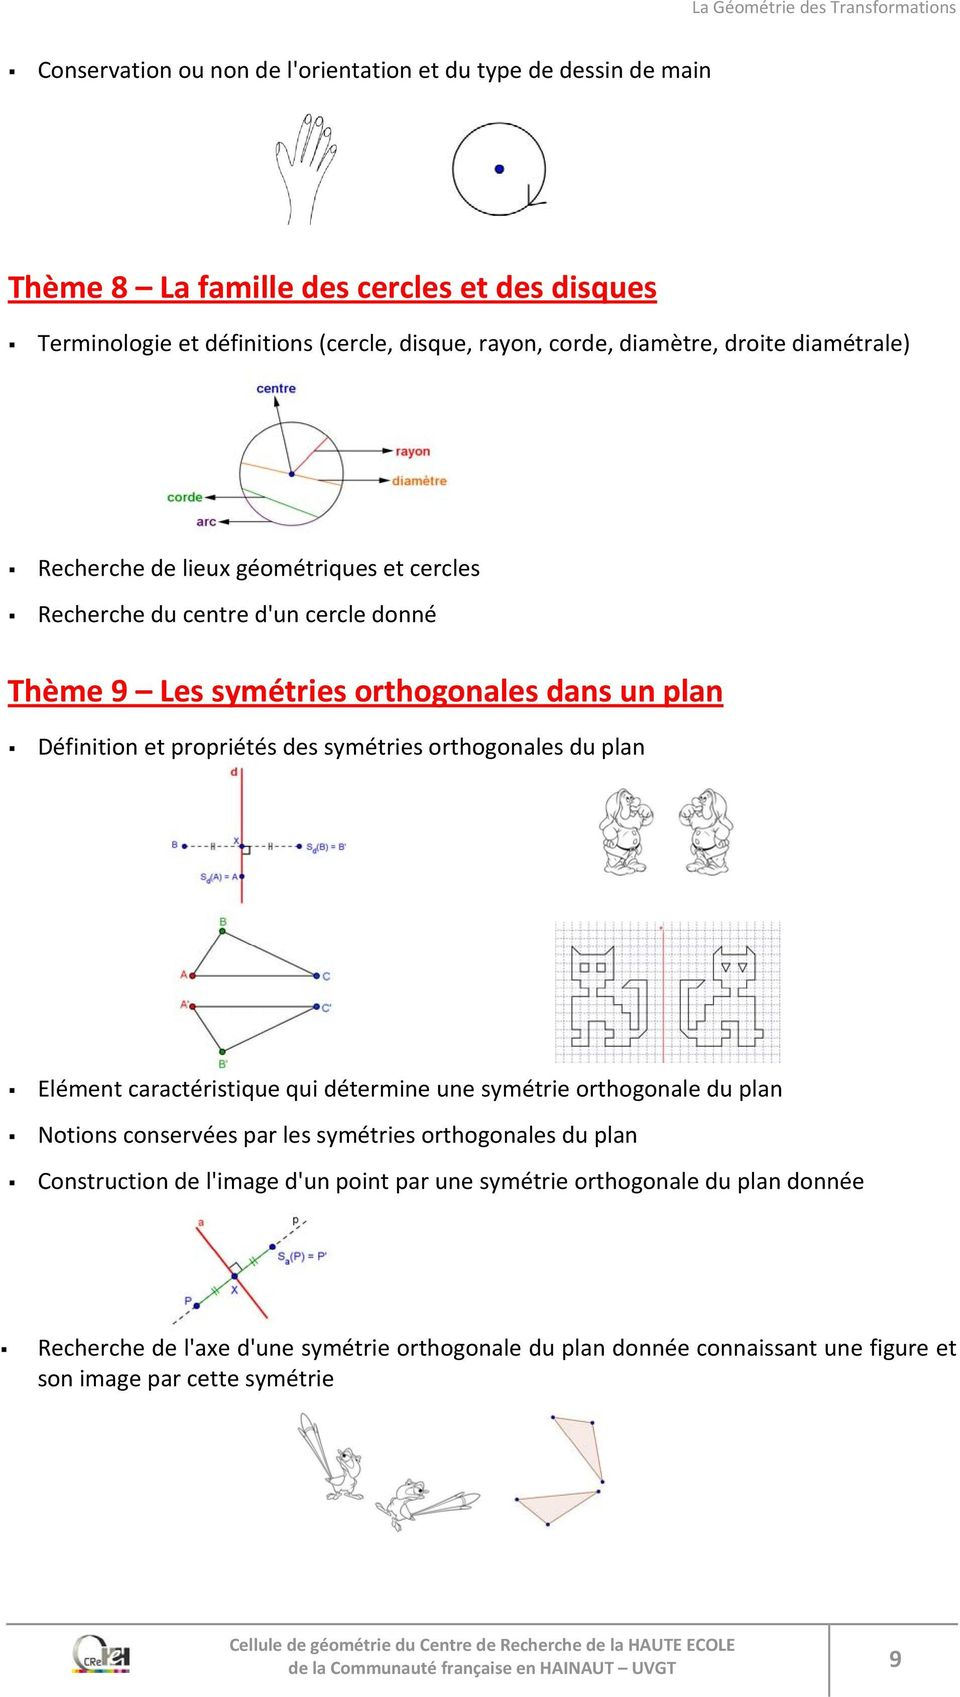 orthogonales du plan Elément caractéristique qui détermine une symétrie orthogonale du plan Notions conservées par les symétries orthogonales du plan Construction de l'image d'un point par